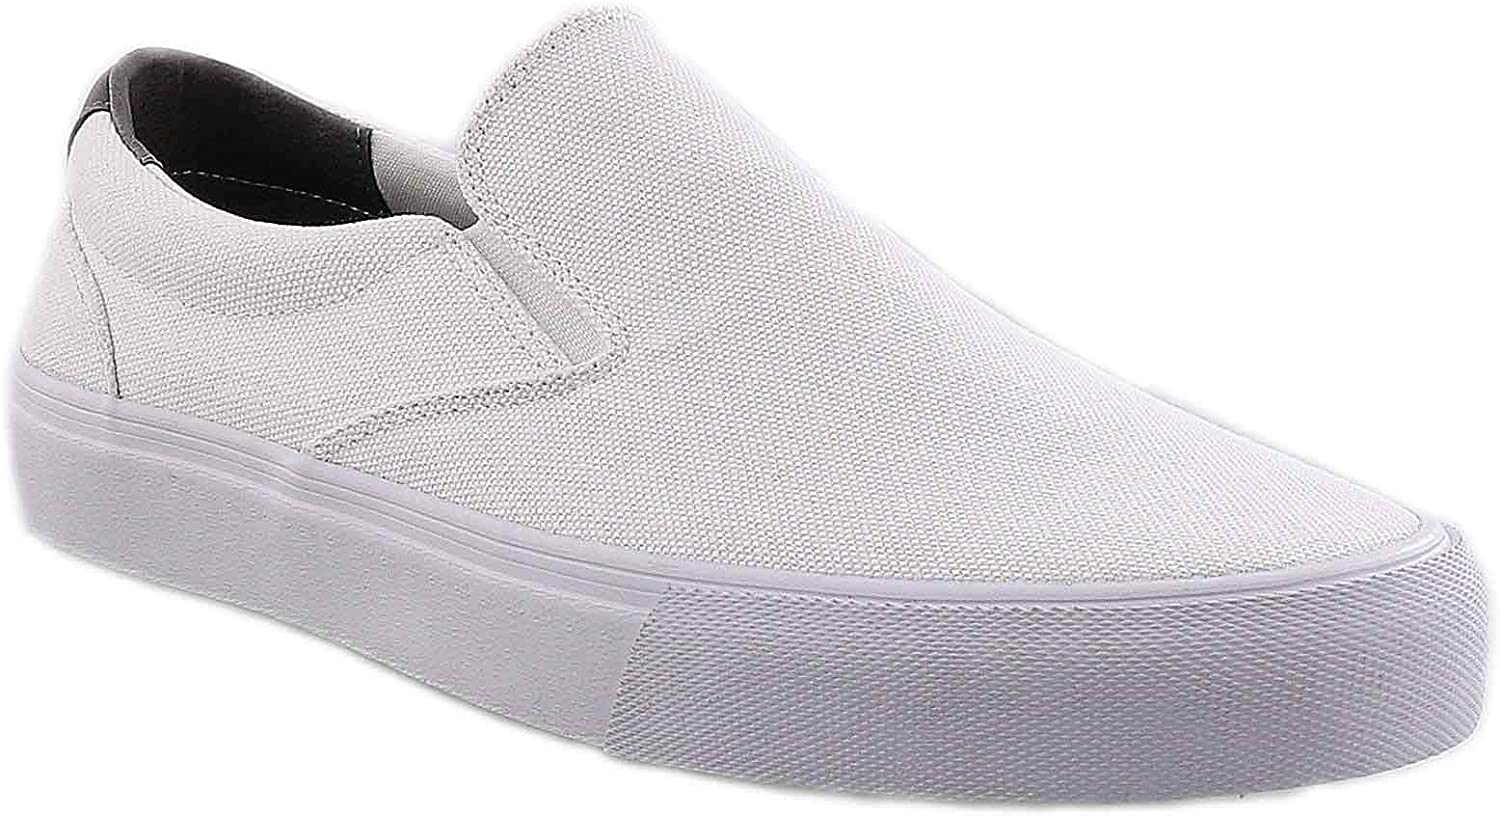 Crevo Men's Sneaker Sale special price Pax Limited time trial price